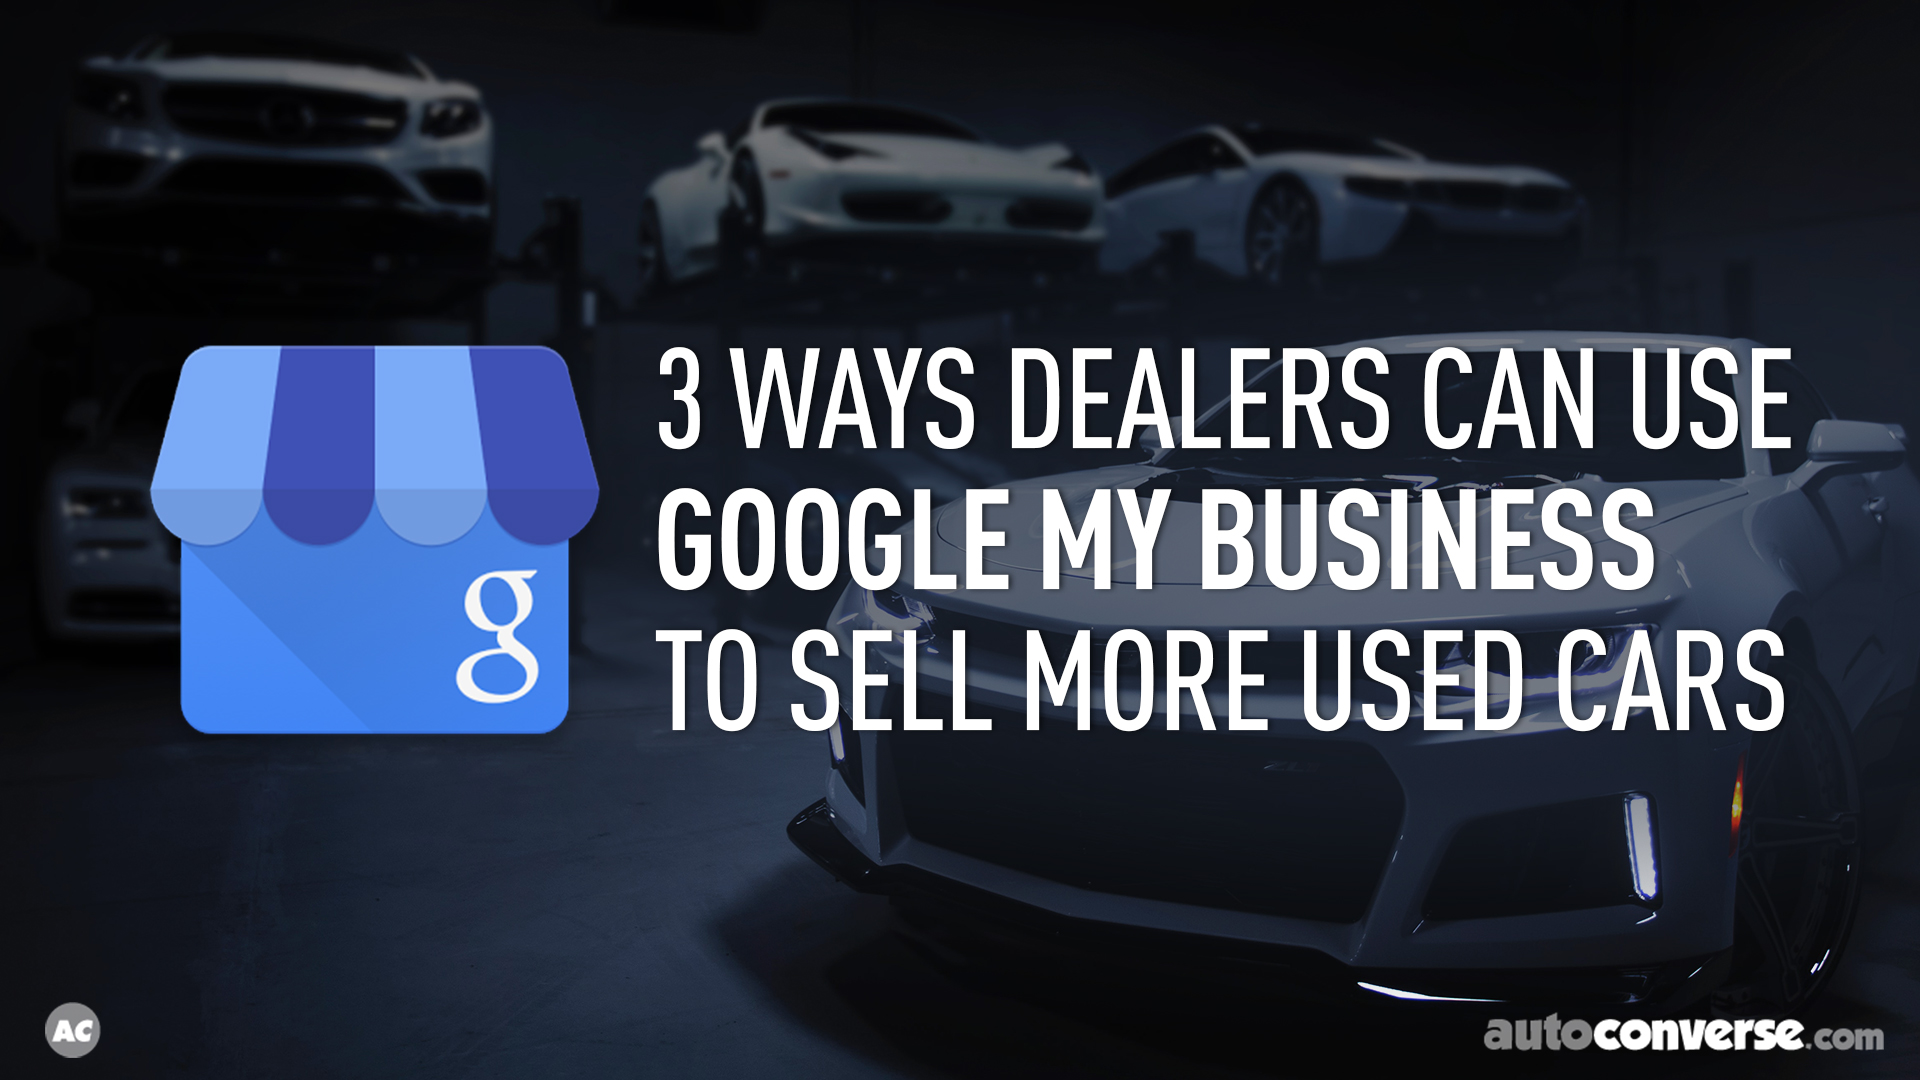 3 Ways Auto Retailers Can Use Google My Business to Sell More Used Cars [VIDEO]